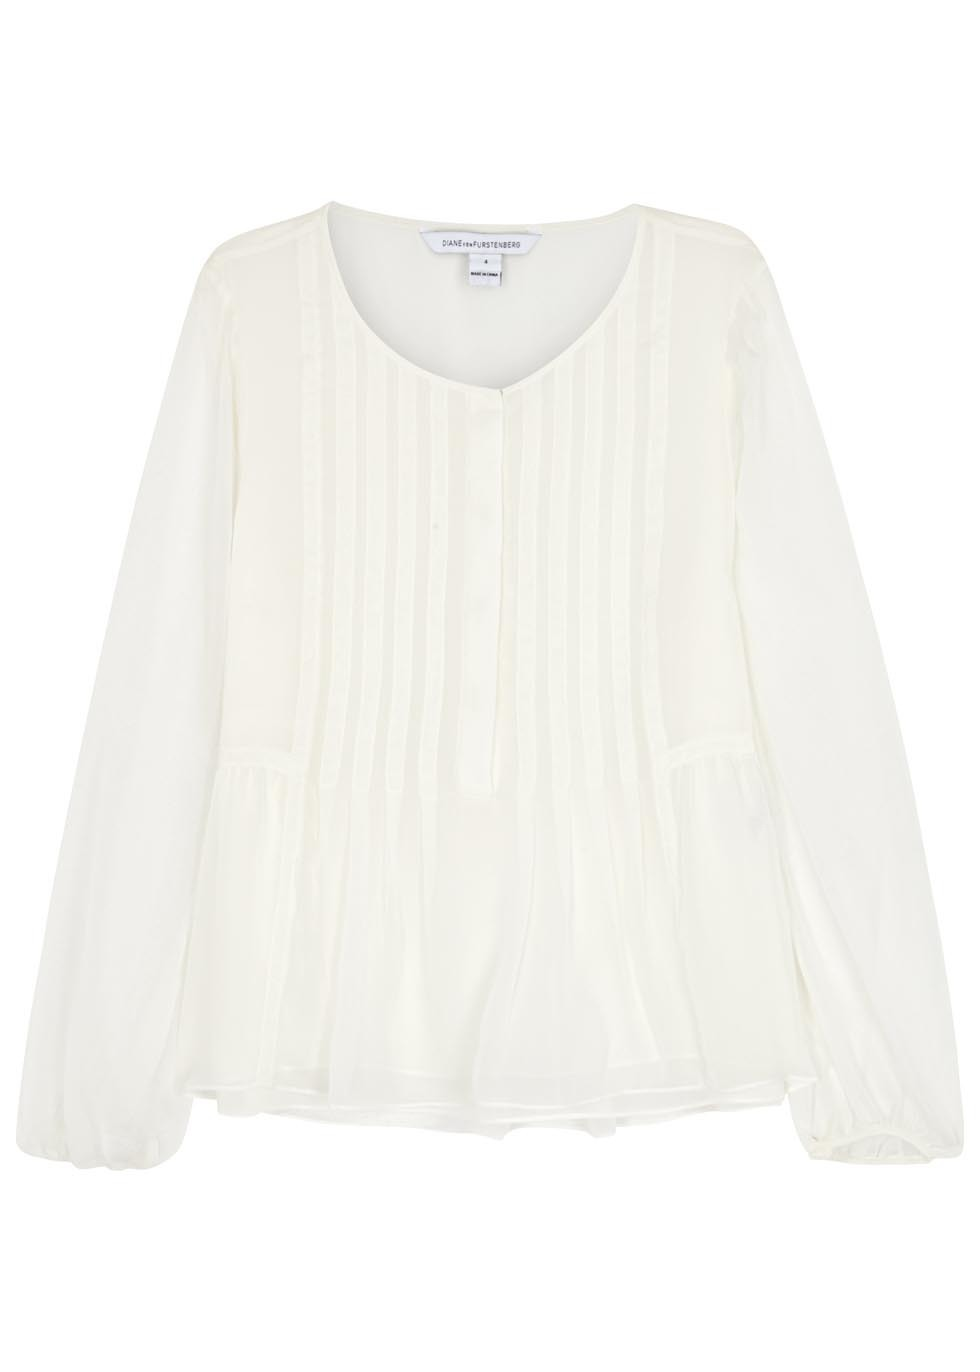 Jayne Ivory Pintucked Silk Chiffon Blouse - neckline: v-neck; pattern: plain; style: blouse; predominant colour: ivory/cream; occasions: evening; length: standard; fibres: silk - 100%; fit: body skimming; sleeve length: long sleeve; sleeve style: standard; texture group: sheer fabrics/chiffon/organza etc.; pattern type: fabric; season: s/s 2016